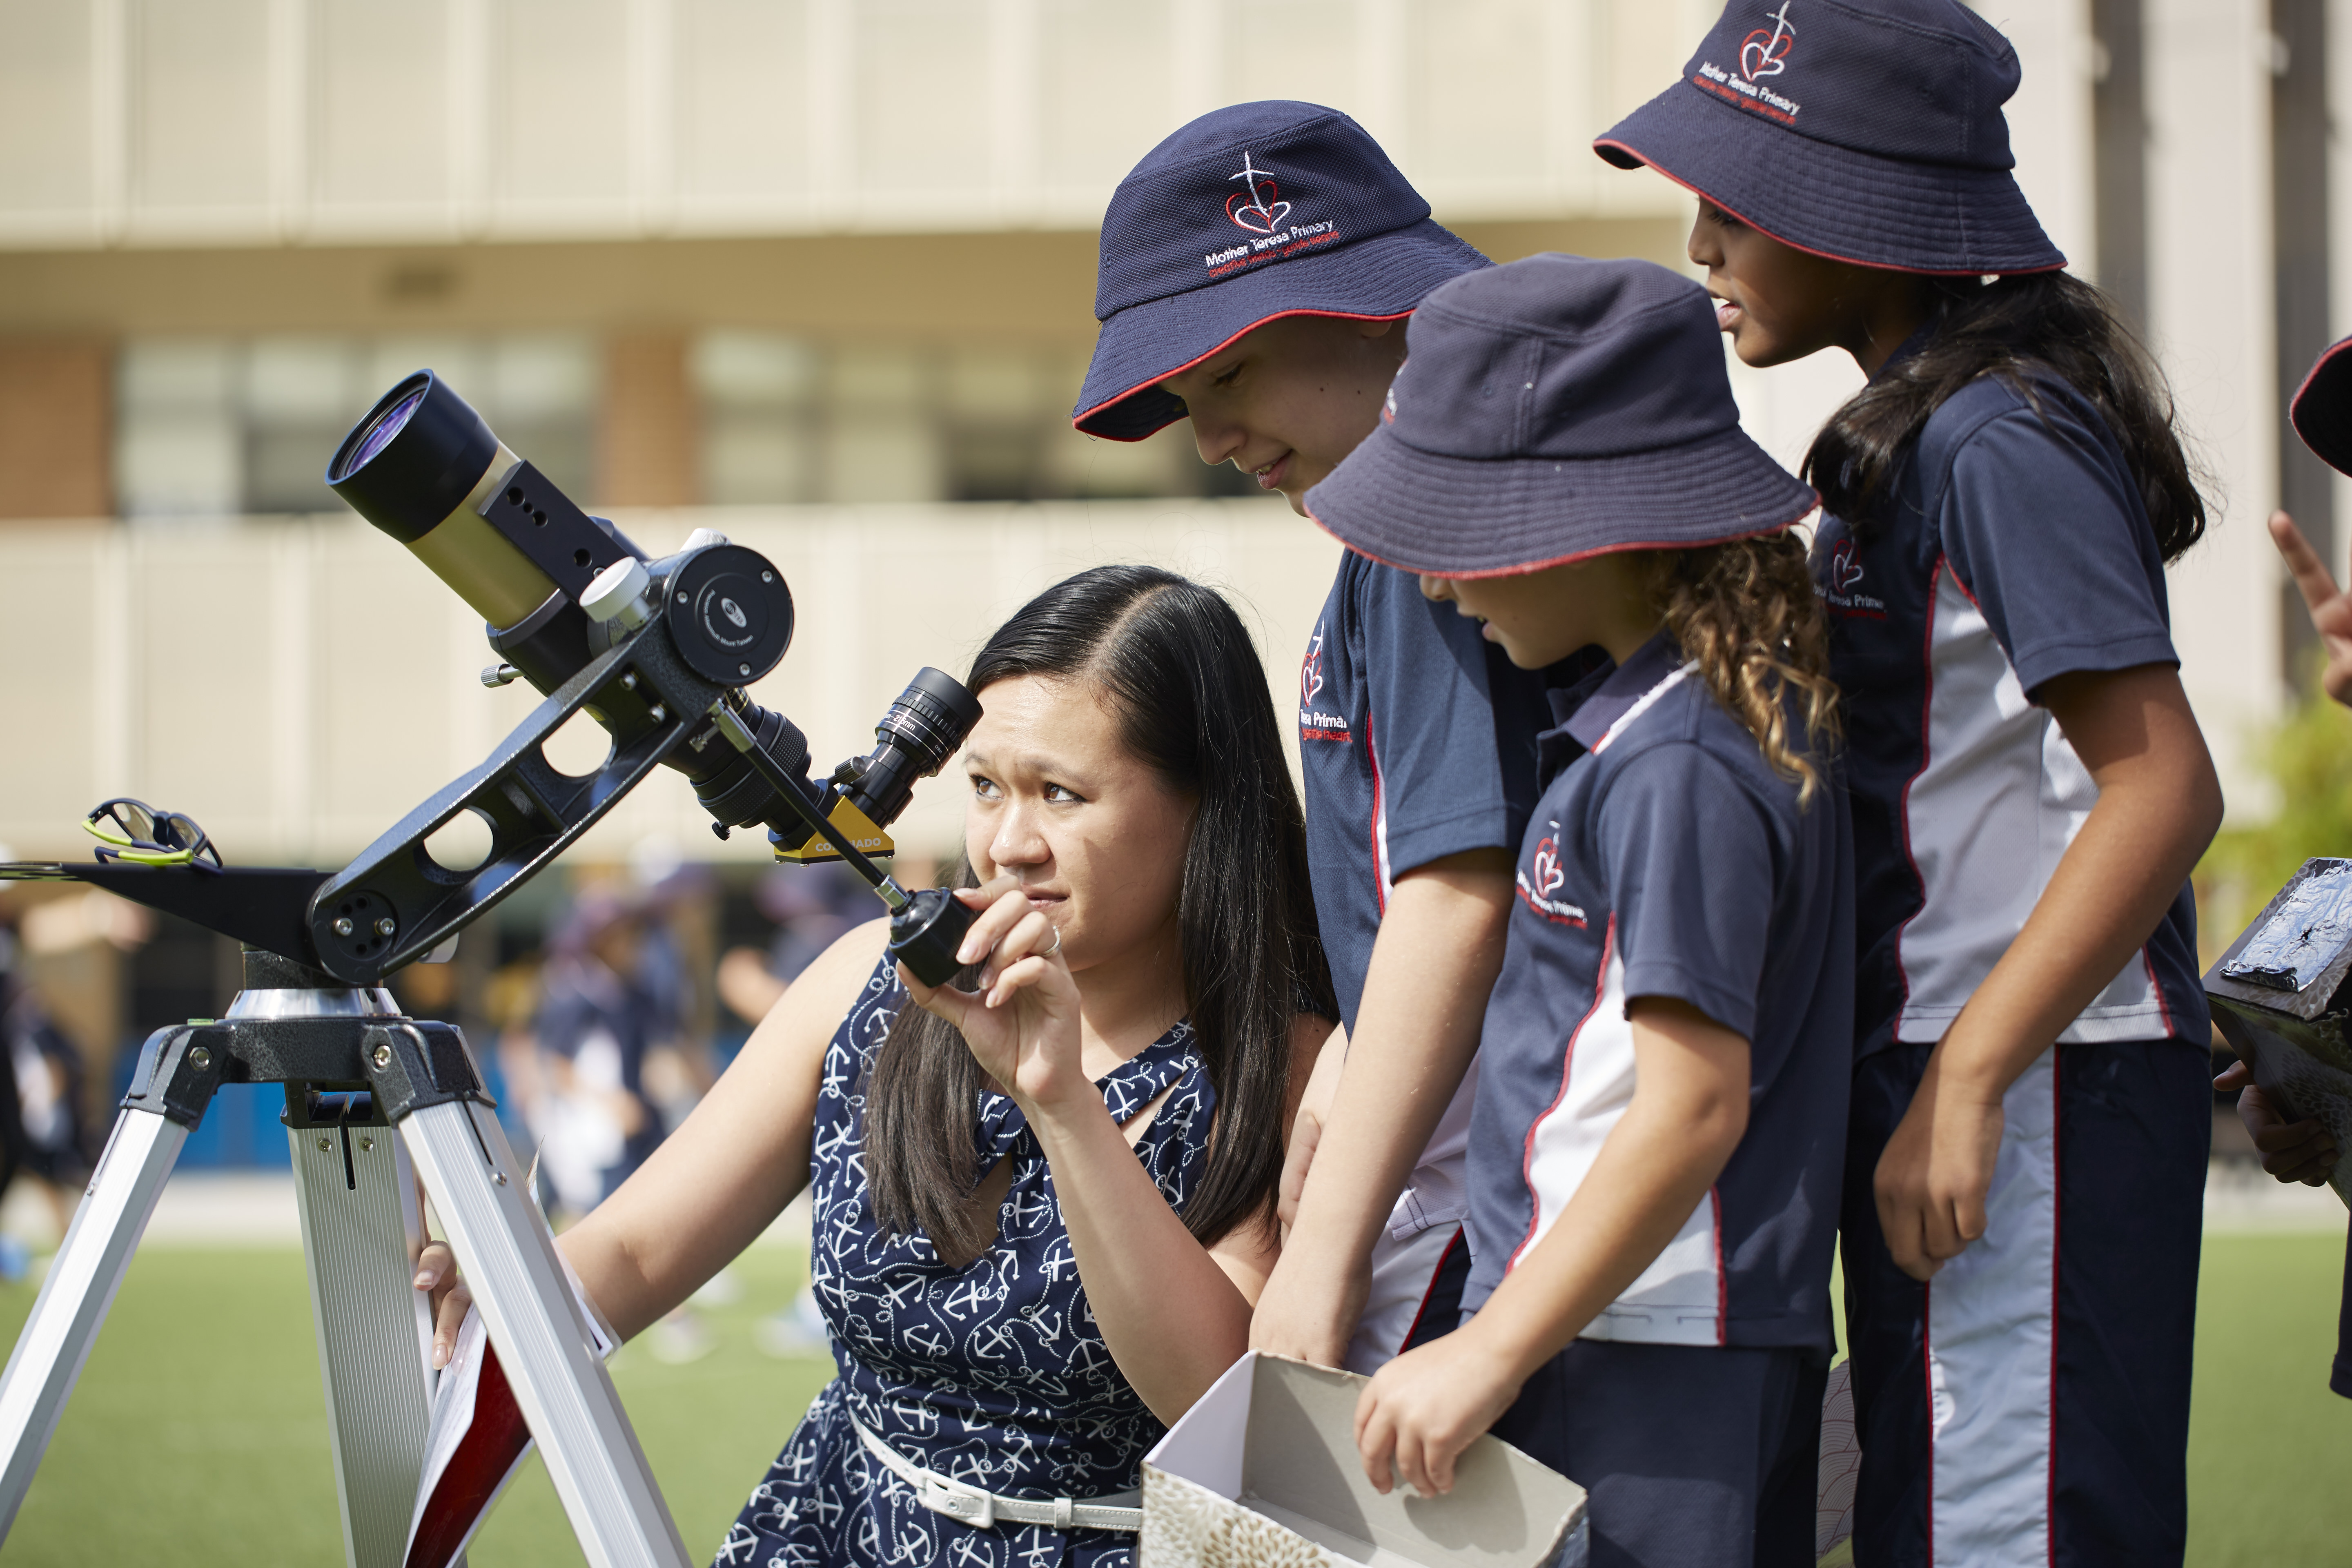 Scientist showing students how to use a telescope.